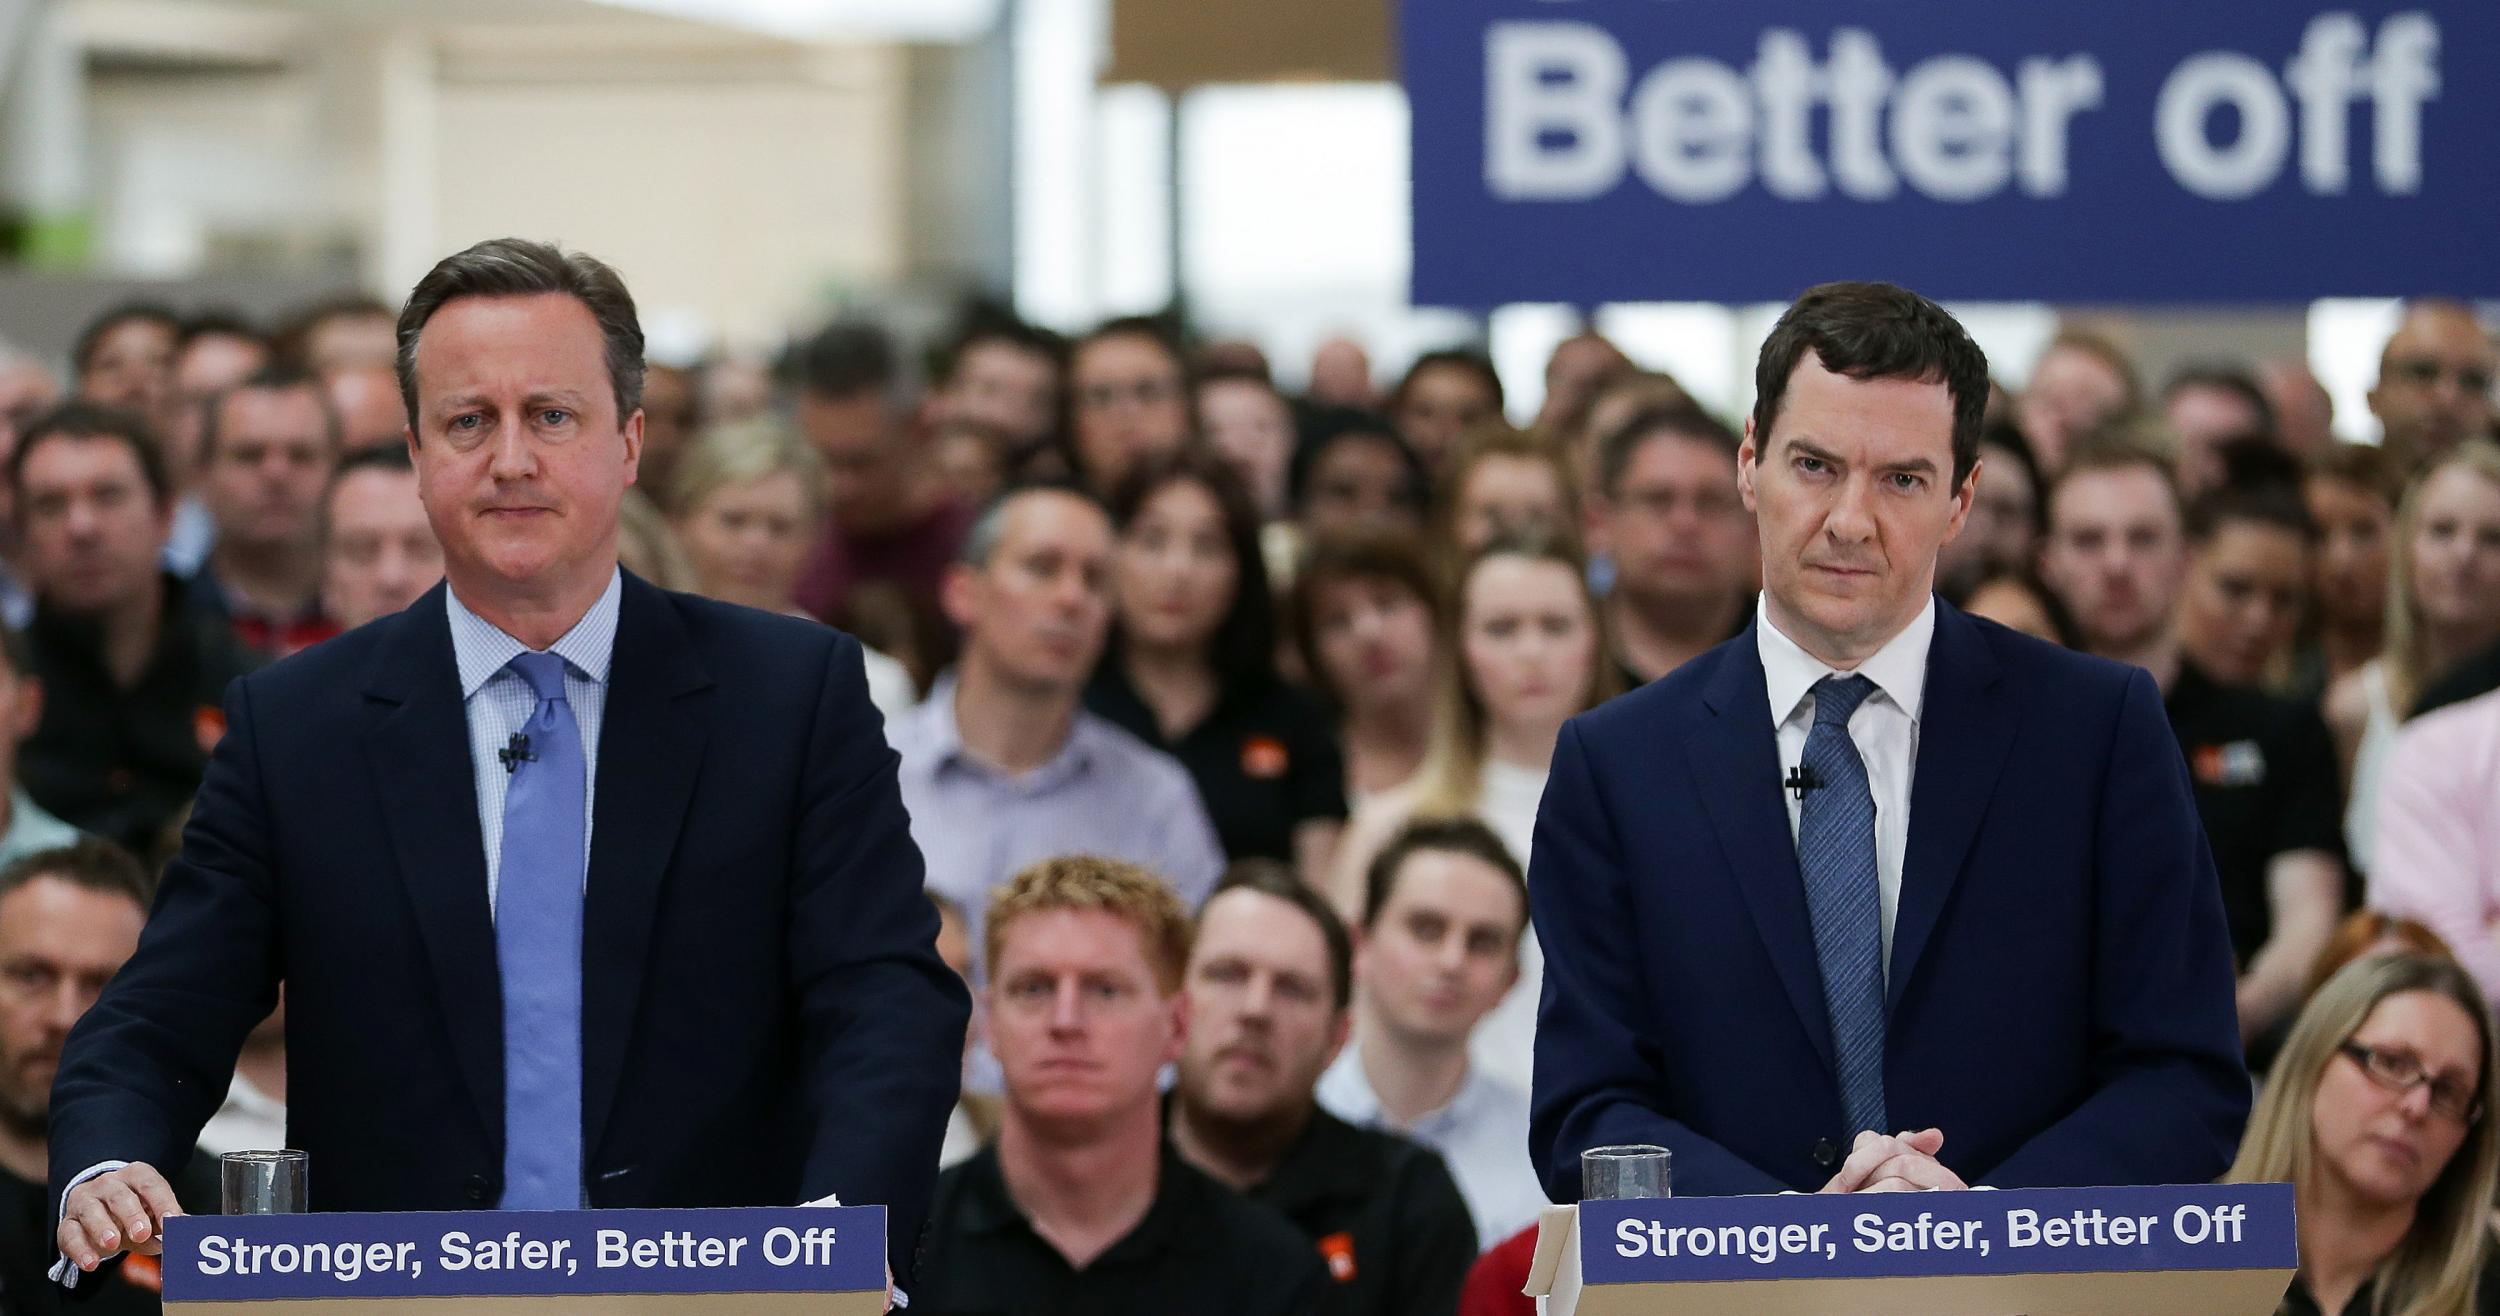 Brexit: David Cameron fuelled Leave support by blaming EU, says George Osborne